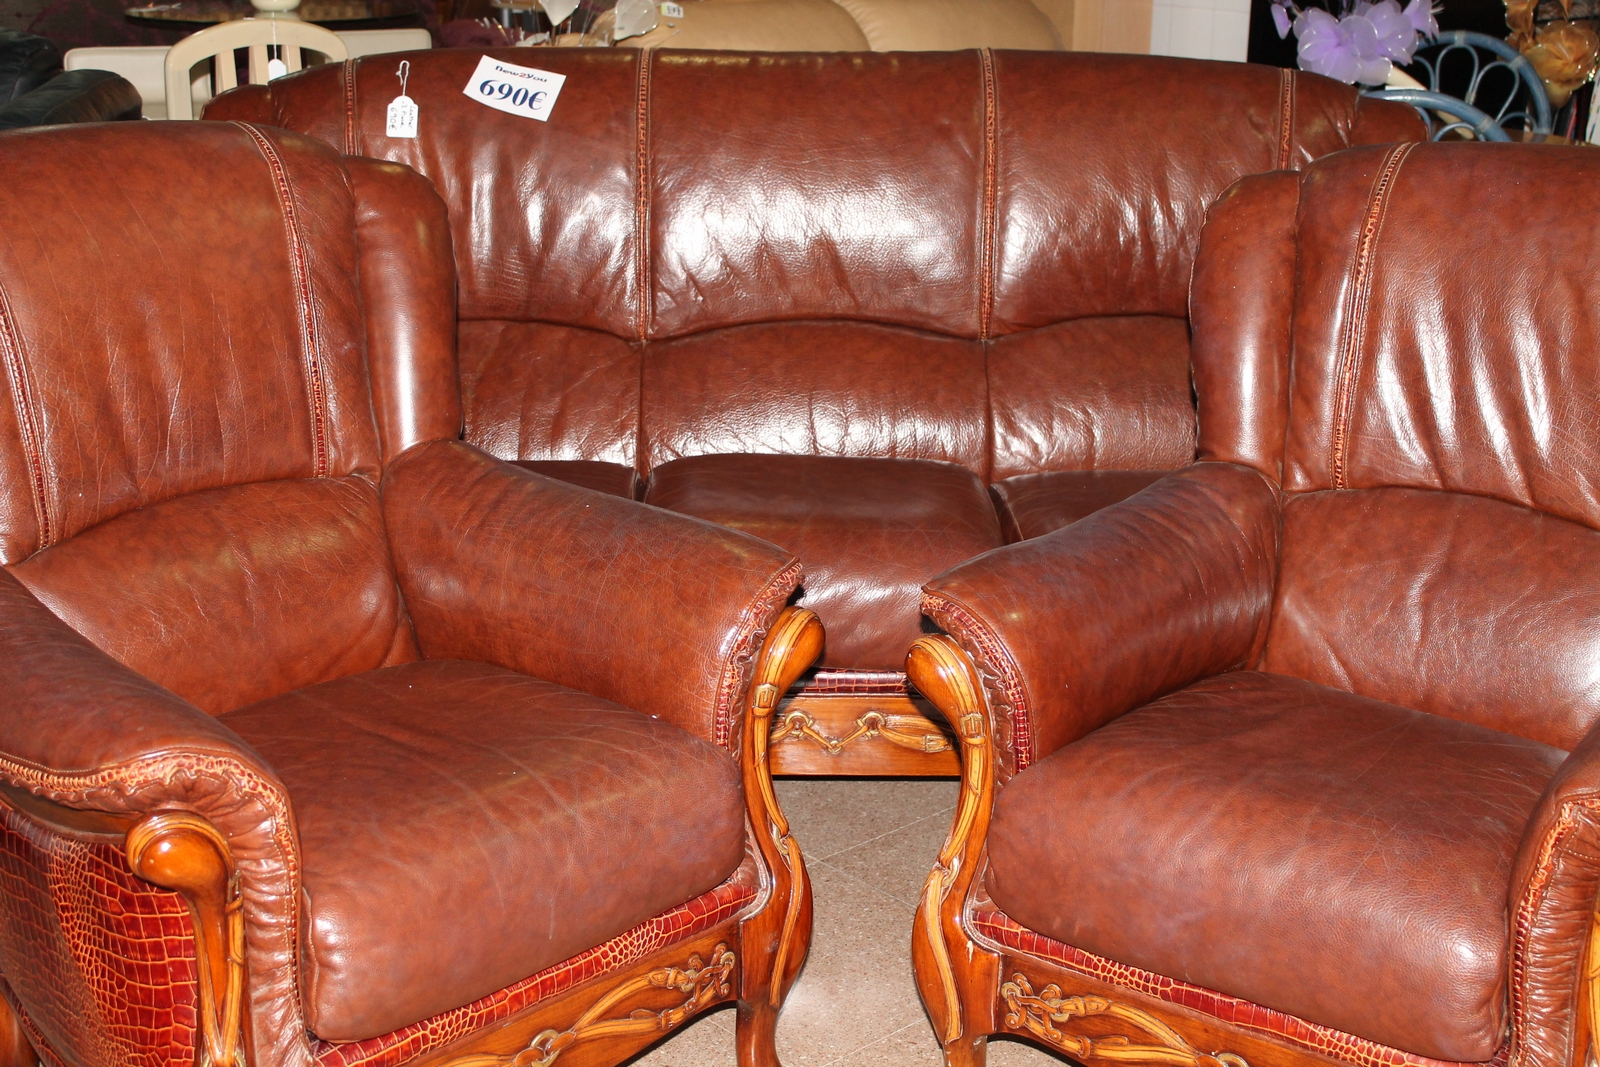 New2you Furniture Second Hand Sofas Sofa Beds For The Living  # Muebles Torrevieja Spain